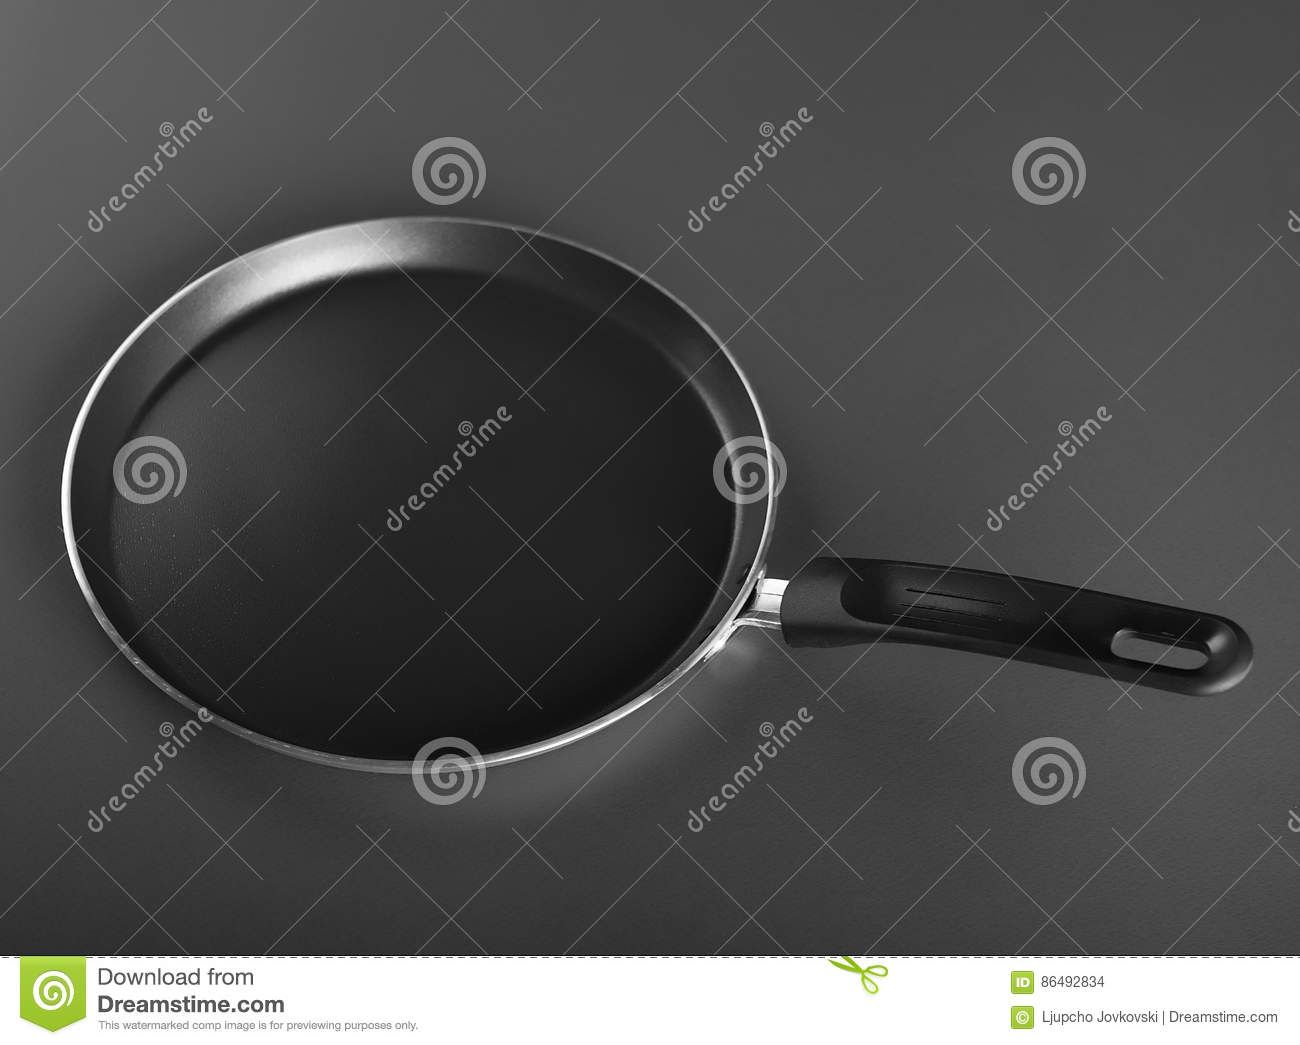 Fry pan, perfect for your pancakes